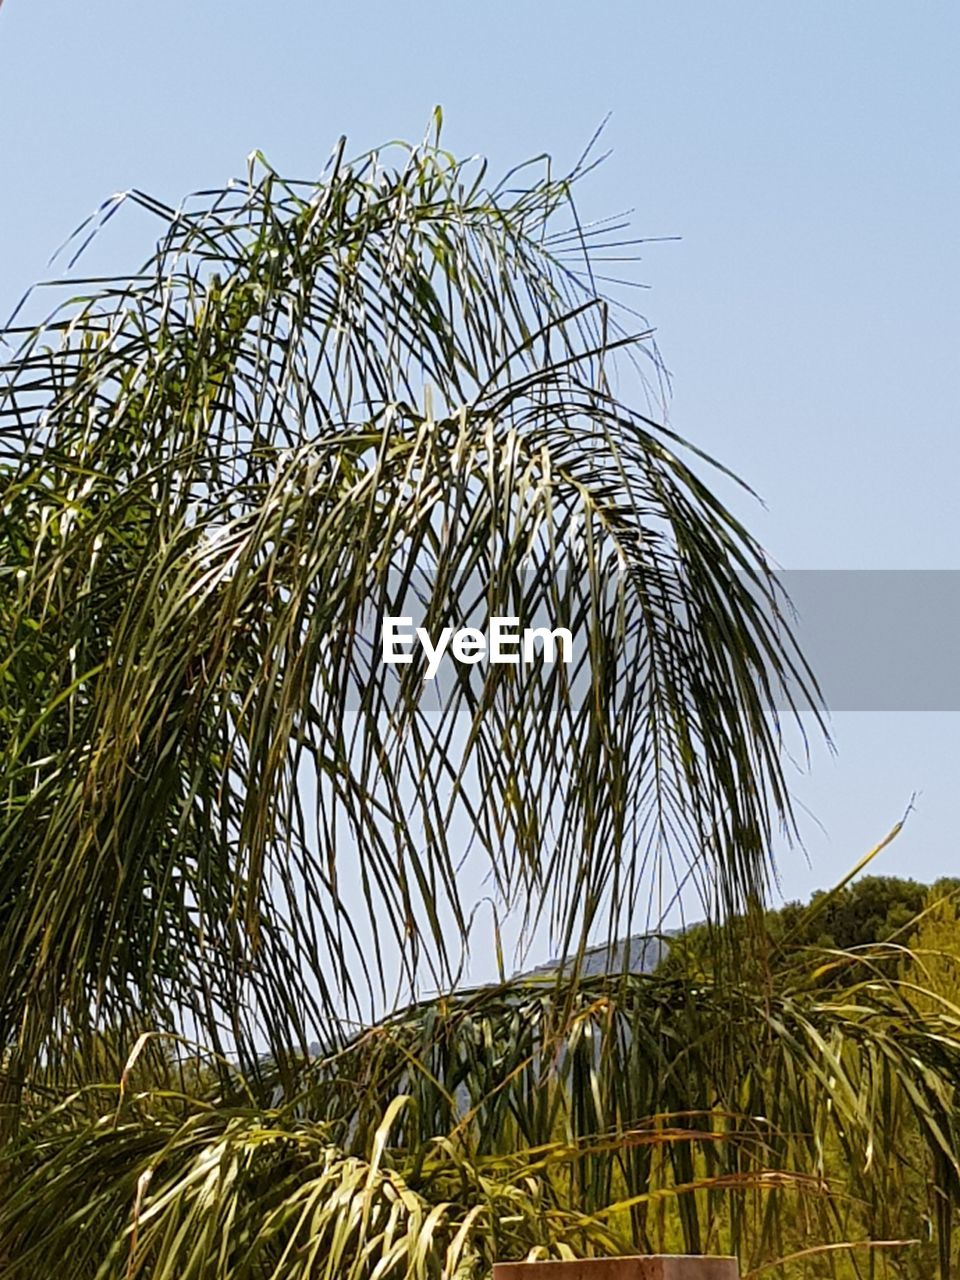 plant, growth, sky, green color, low angle view, nature, clear sky, tree, day, tropical climate, no people, palm tree, tranquility, beauty in nature, outdoors, grass, sunlight, agriculture, land, close-up, palm leaf, coconut palm tree